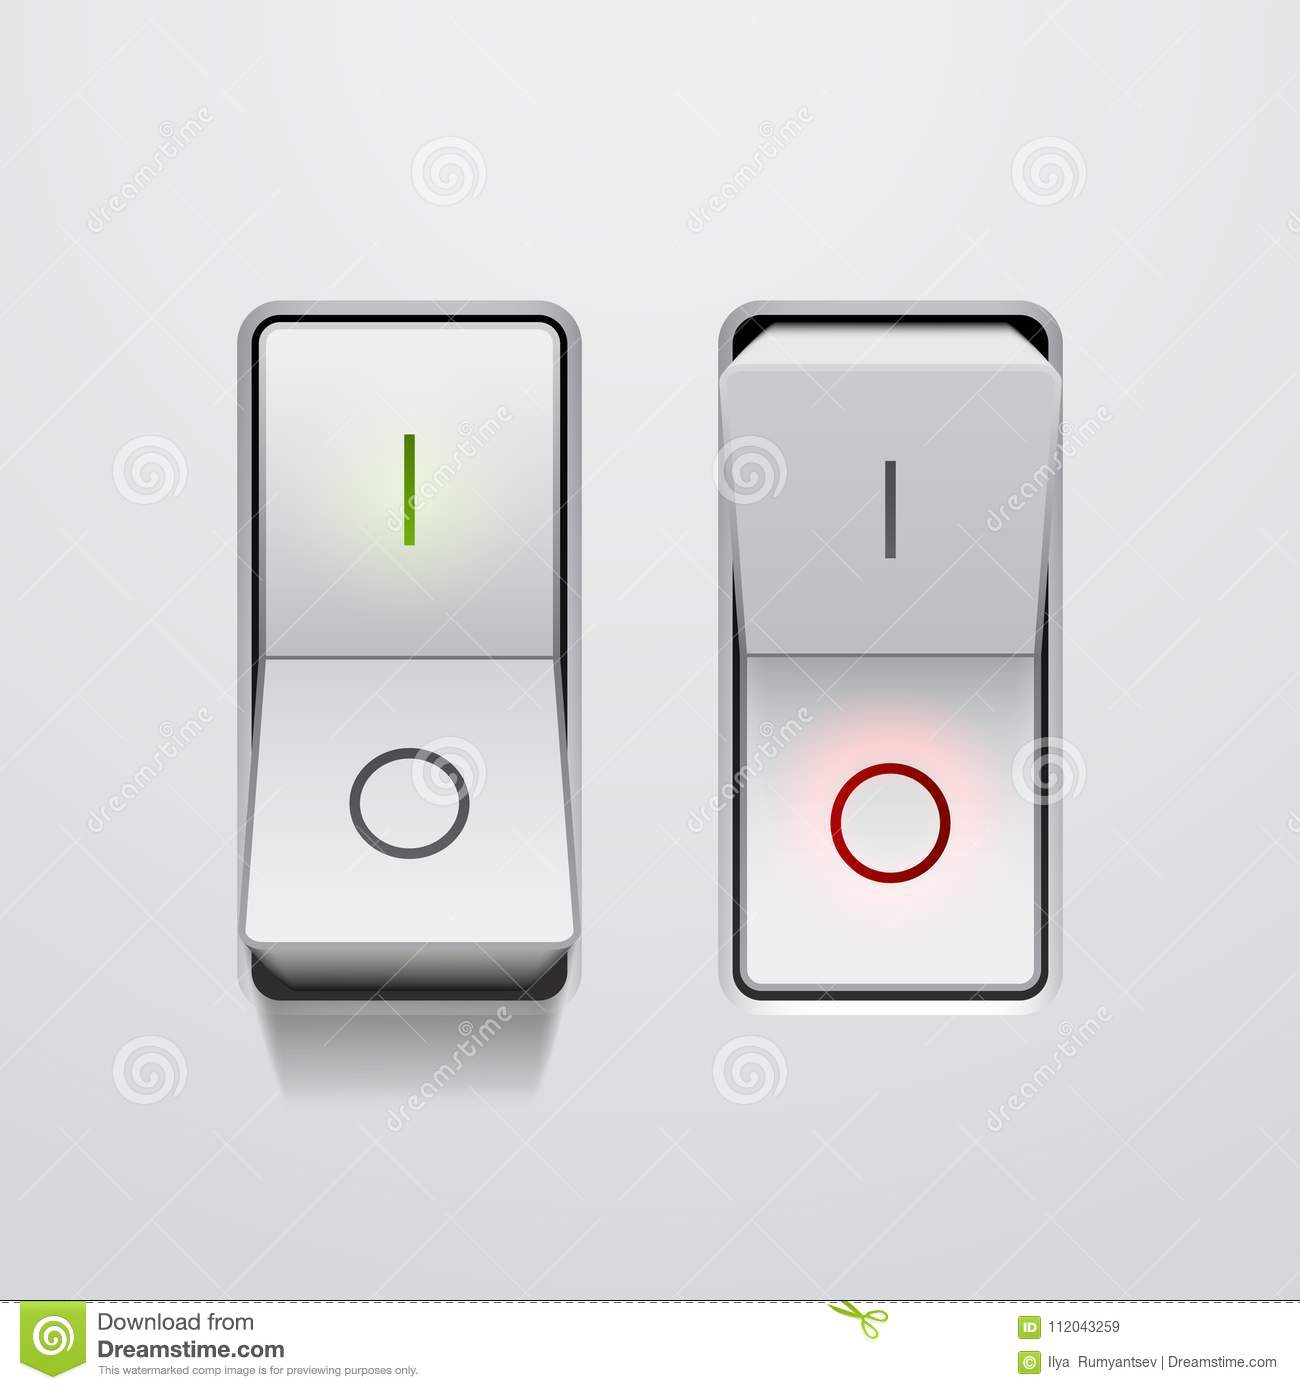 On And Off Switch Buttons Download Free Vector Art Stock Toggle Electronicslab Set Of Realistic Switches In Positions